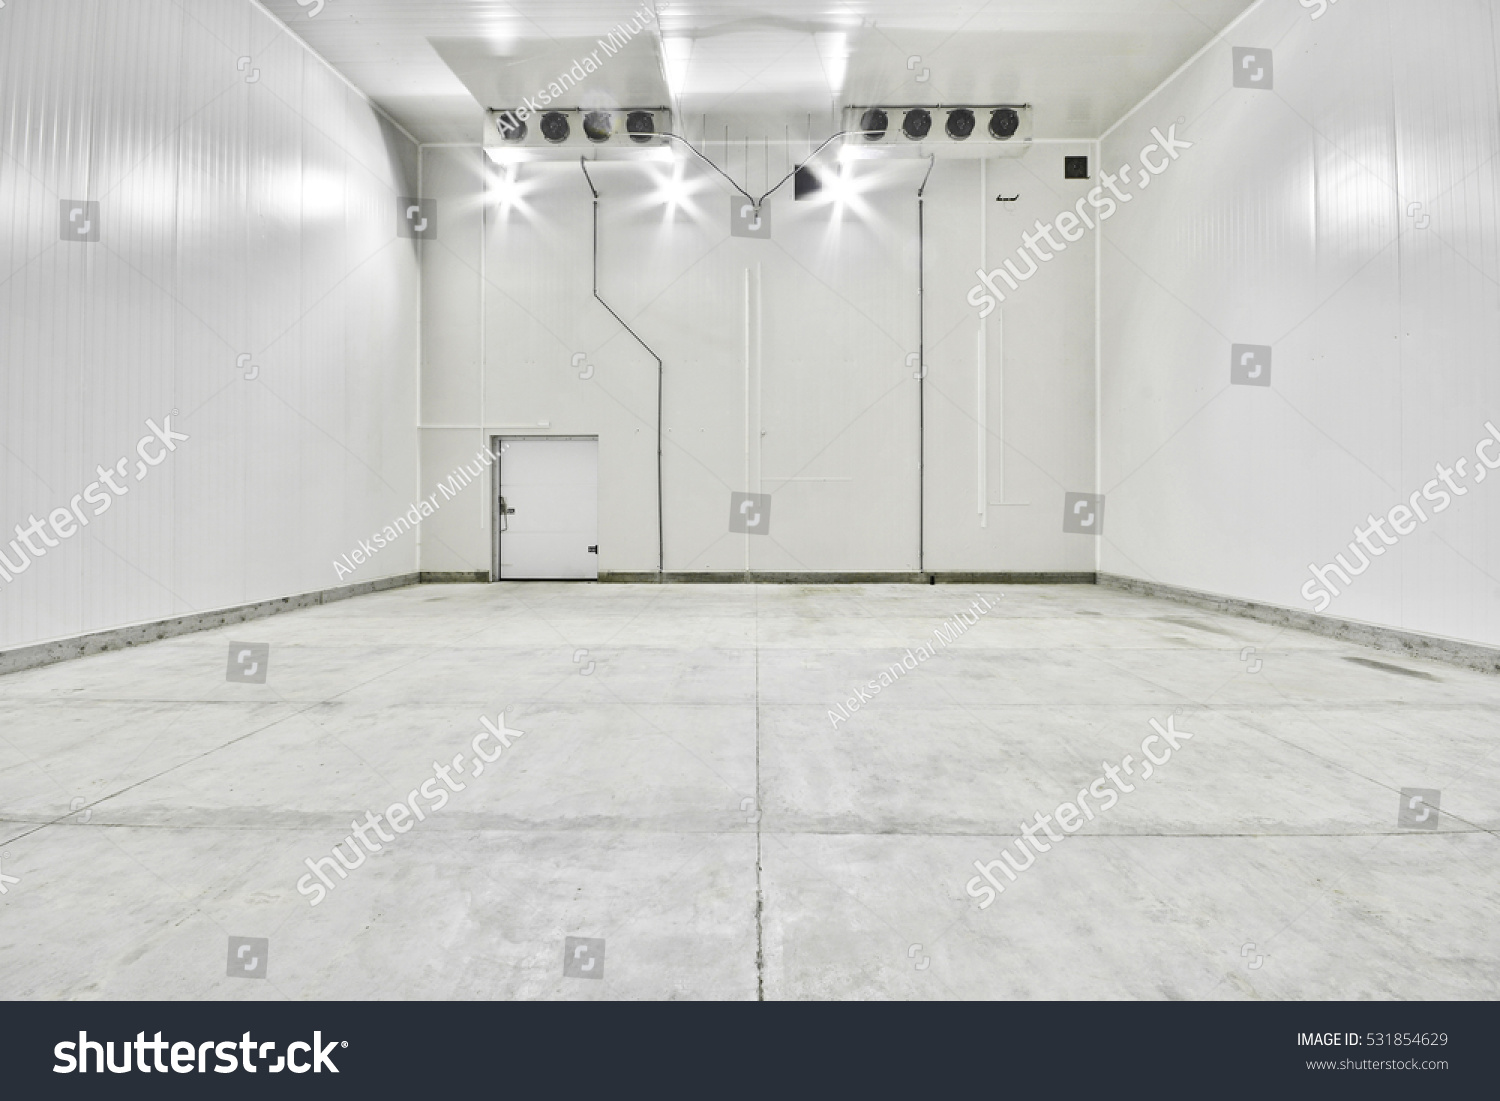 An Empty Industrial Room Refrigerator With Eight Fans